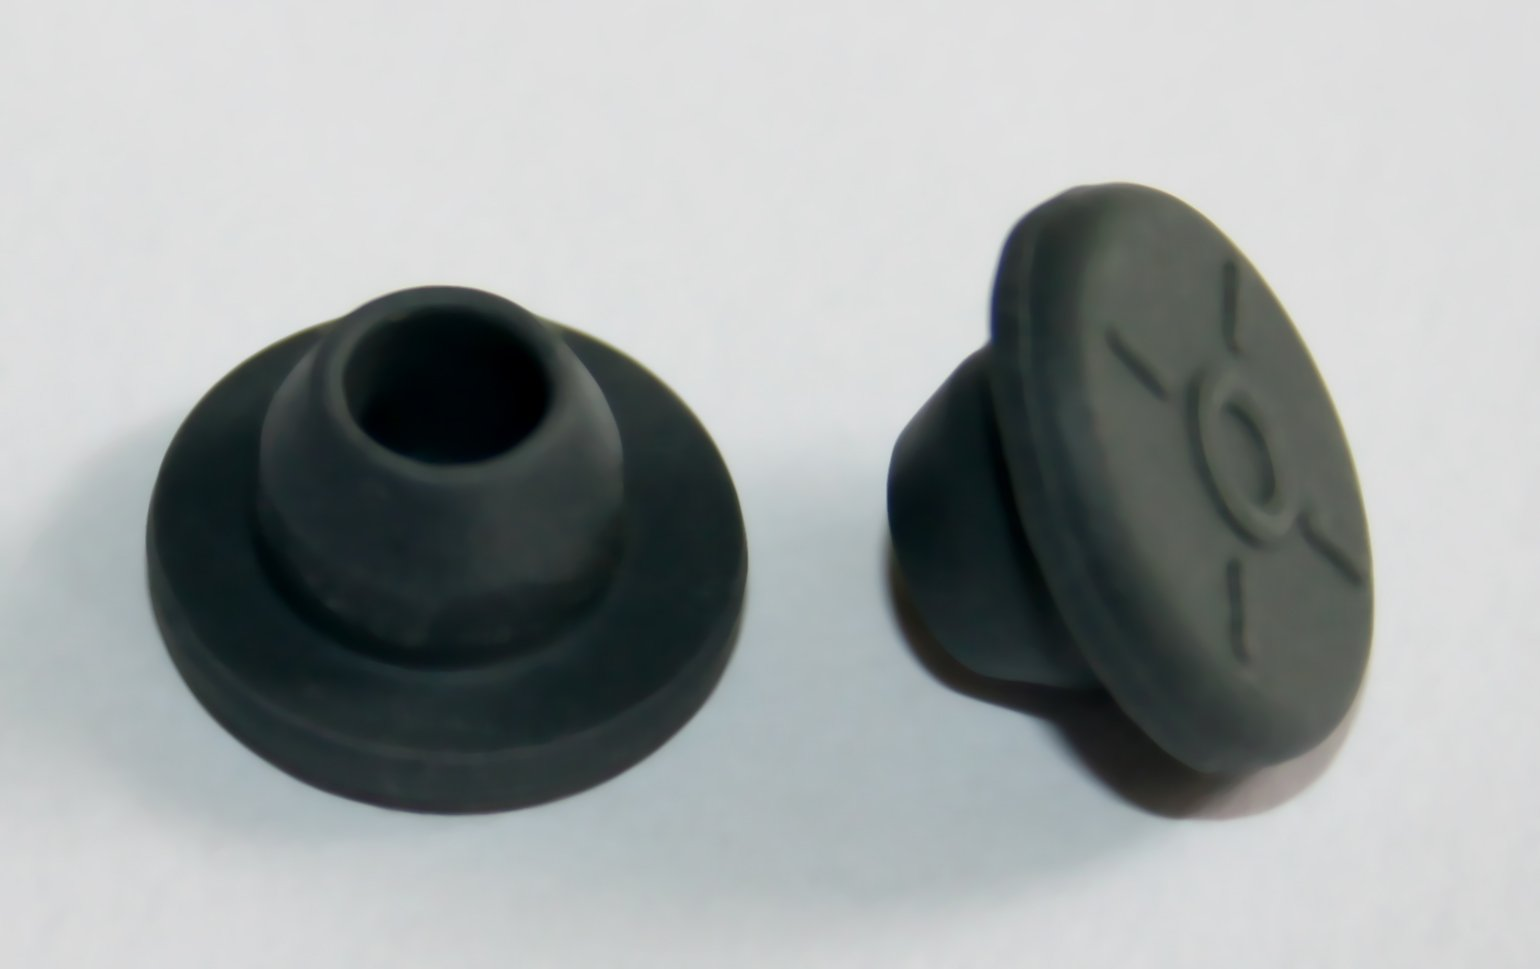 13mm Rubber stoppers for Sealing 1/4 inch or 7mm Opening (200)